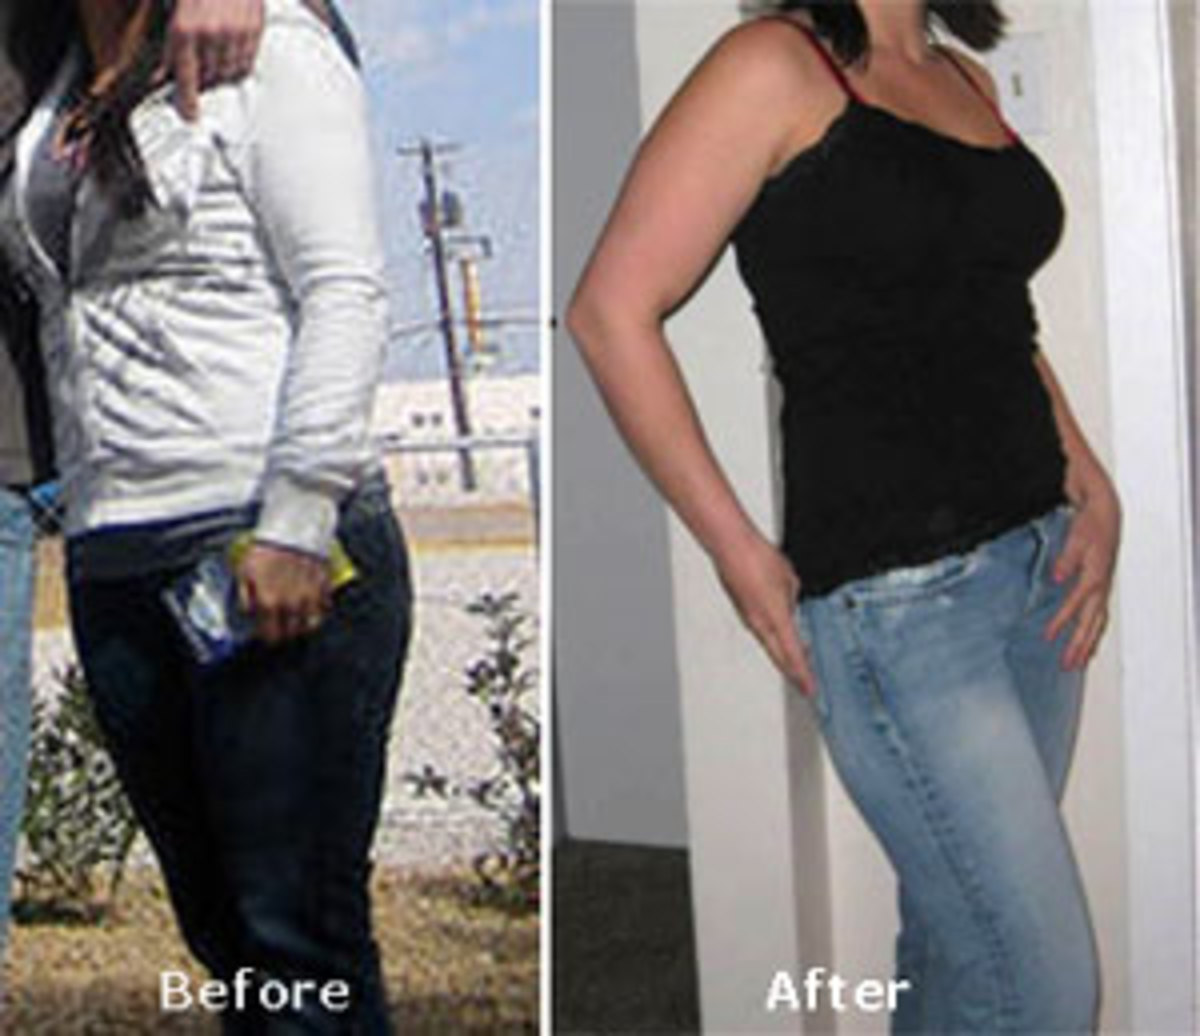 Real HCG drops and a well thought out HCG diet protocol can lead to astounding weight loss.